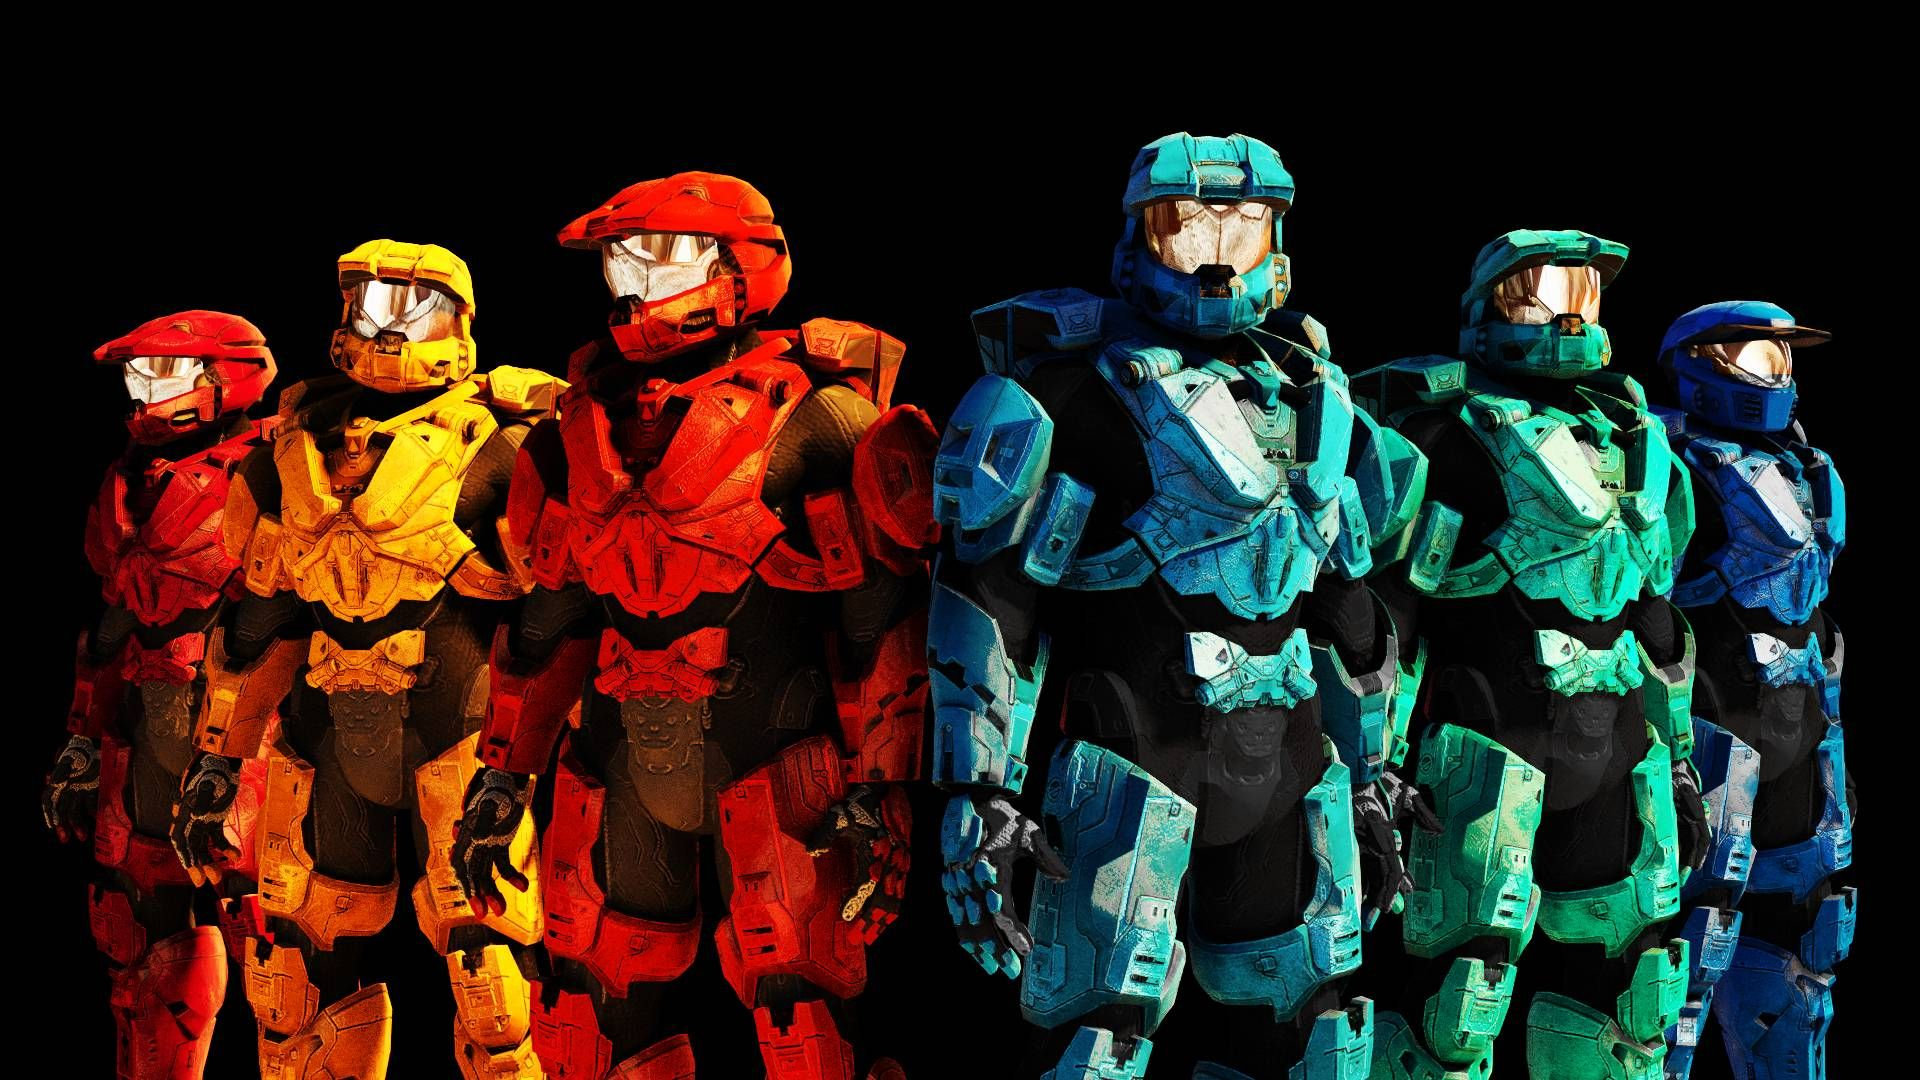 Red Vs Blue 1920x1080 Wallpapers Red Vs Blue Pokemon Red